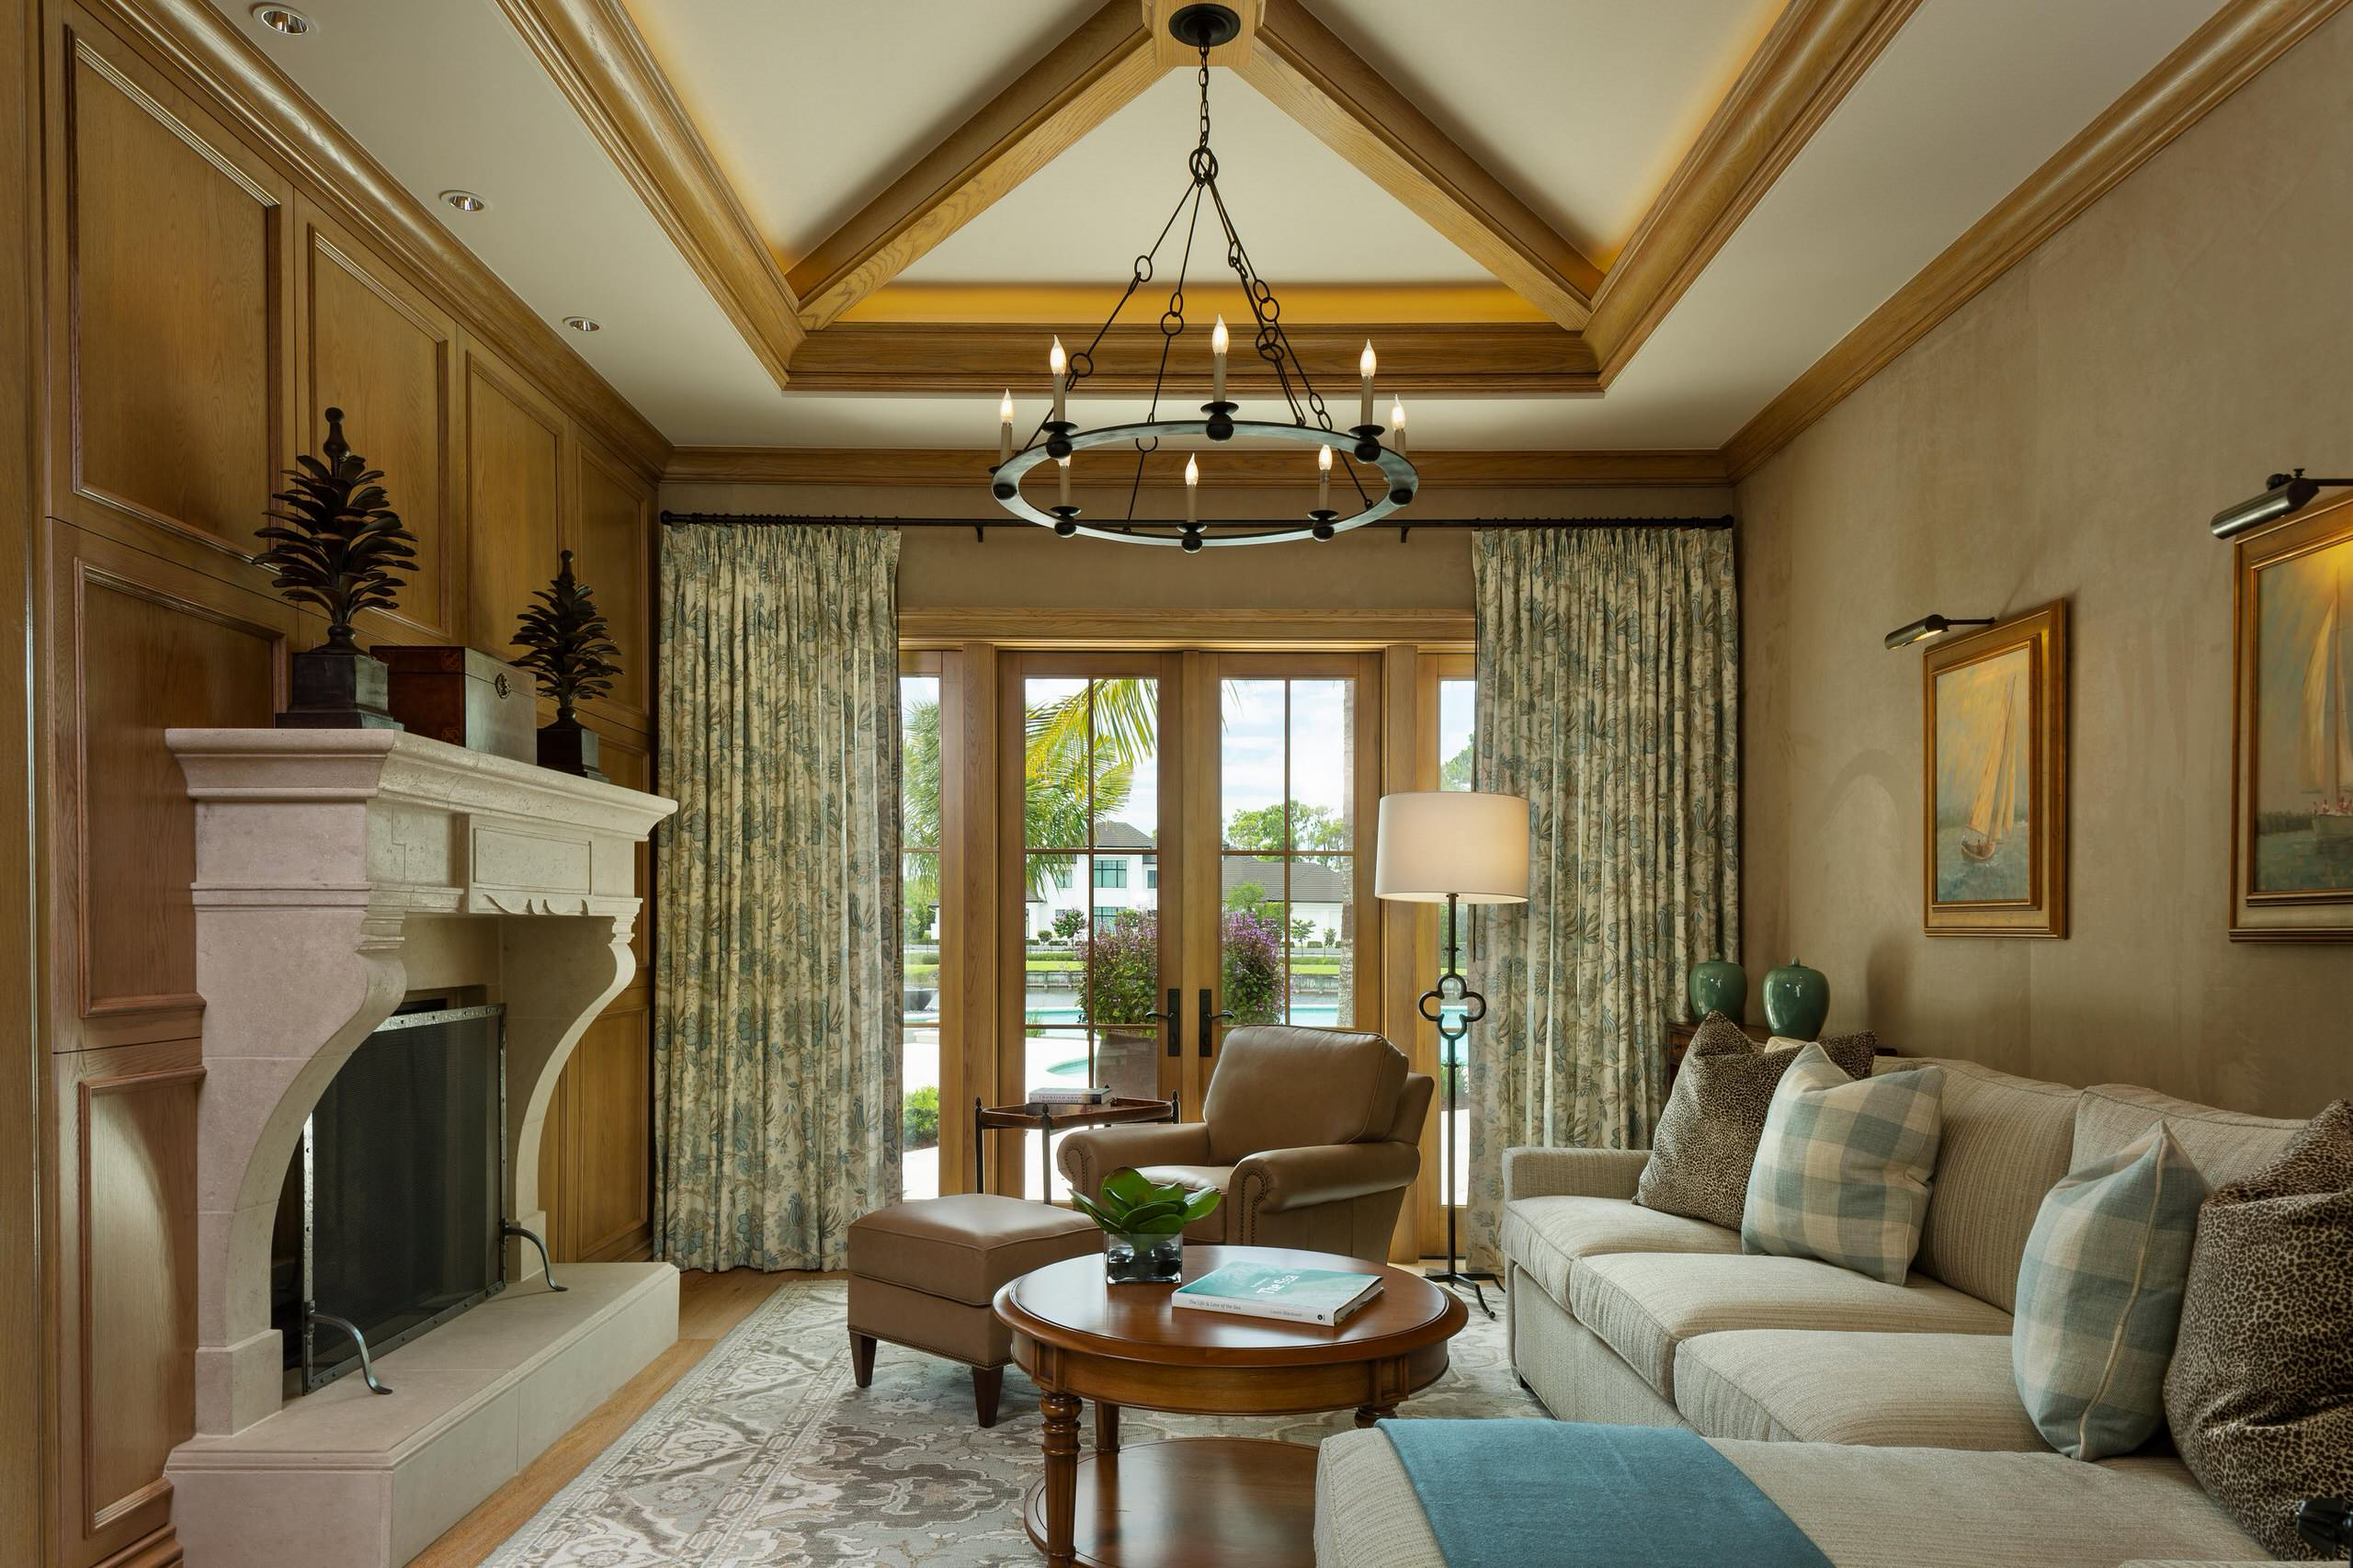 75 Beautiful French Country Living Room Pictures Ideas February 2021 Houzz